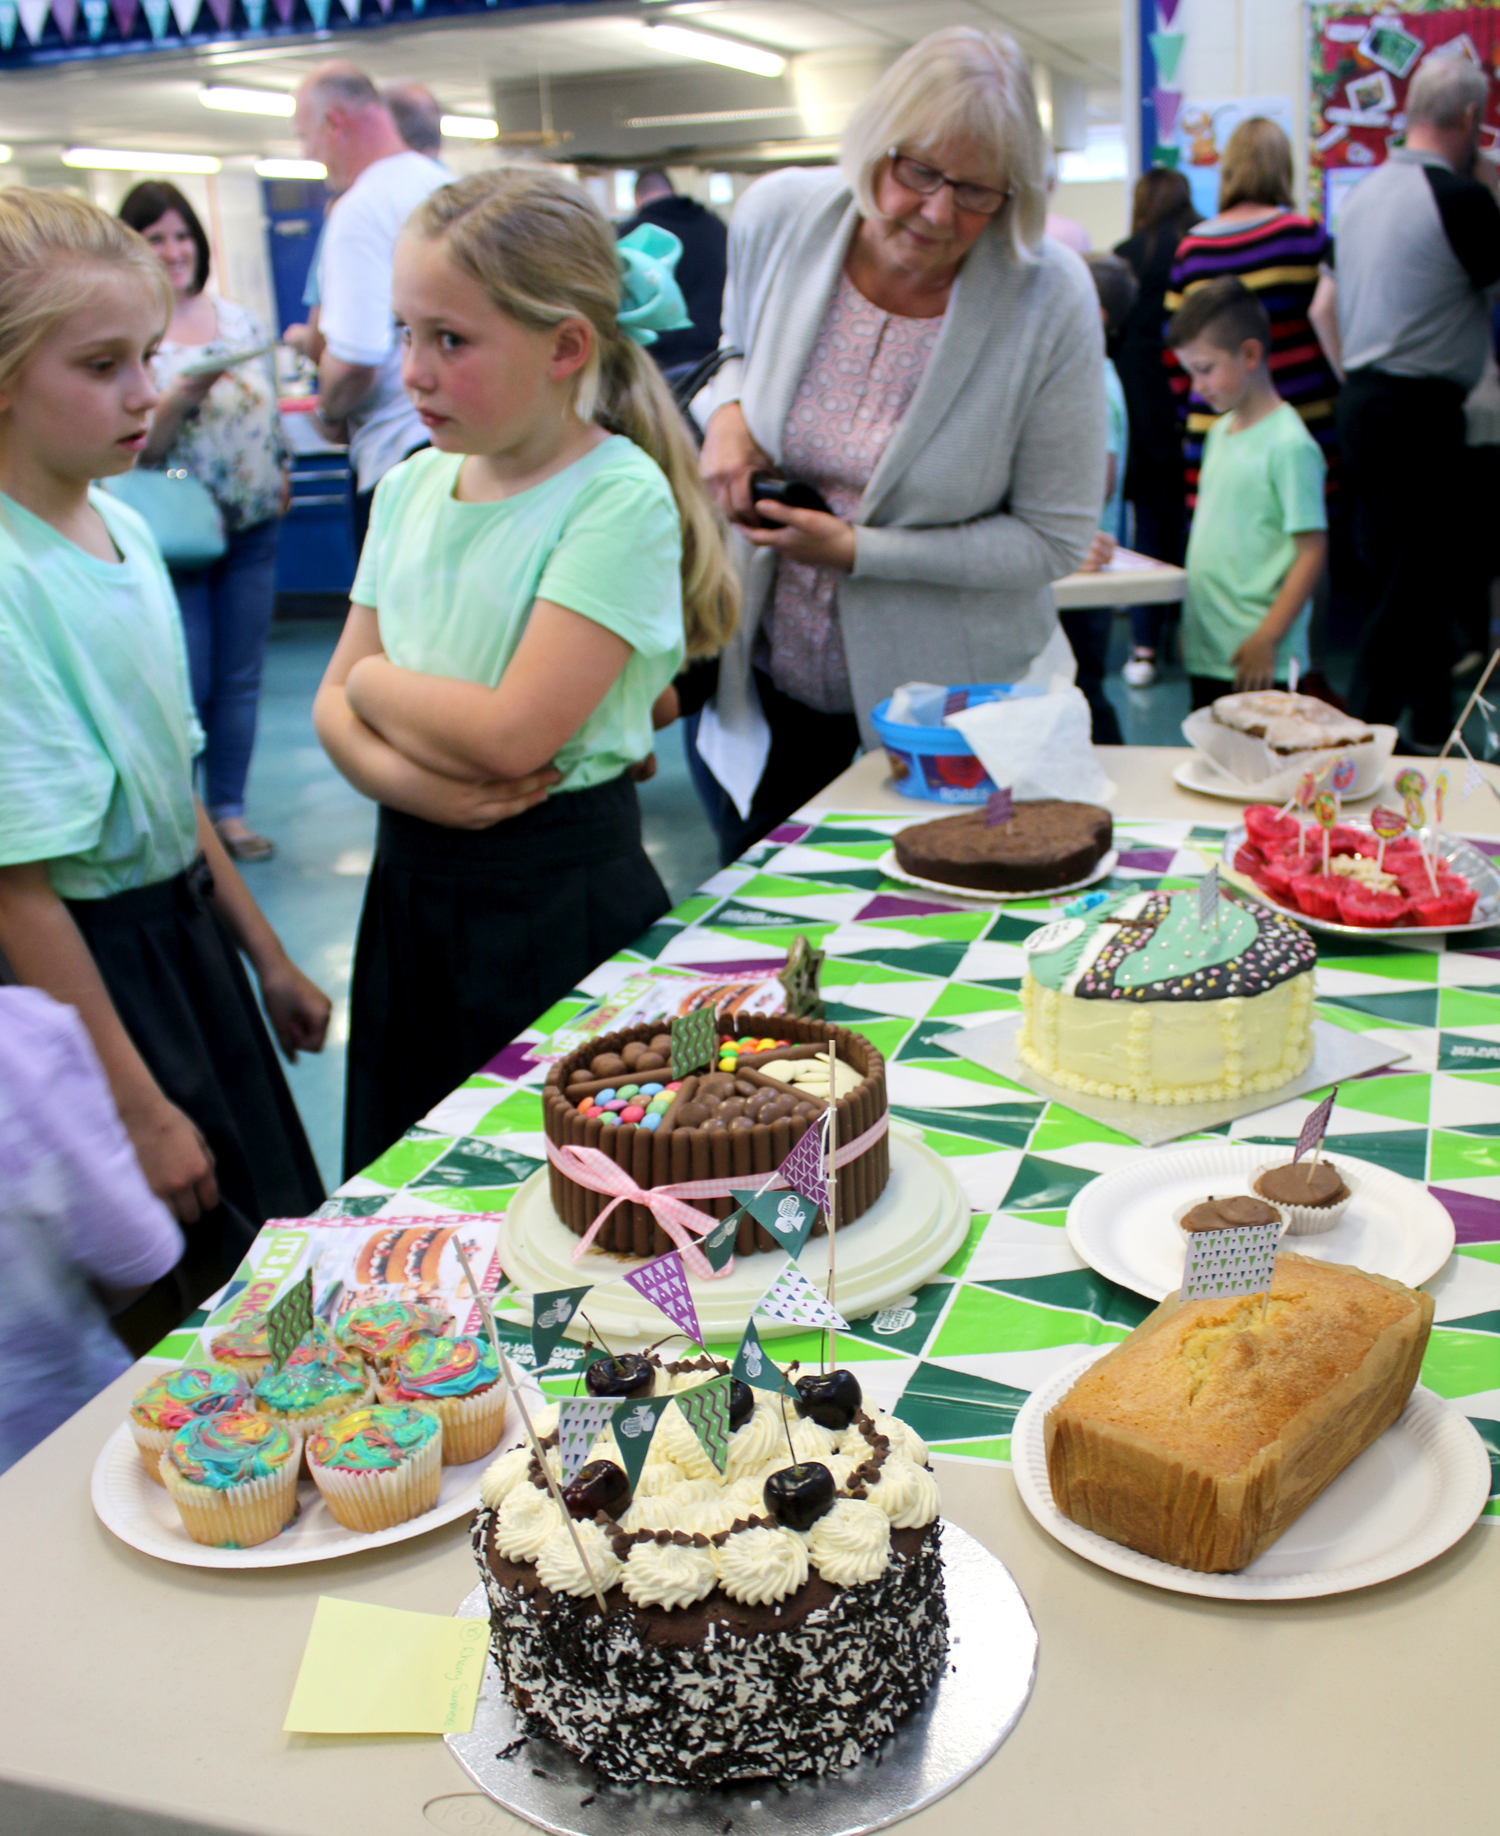 Byerley Park Charity Event Raised £484 for Macmillan